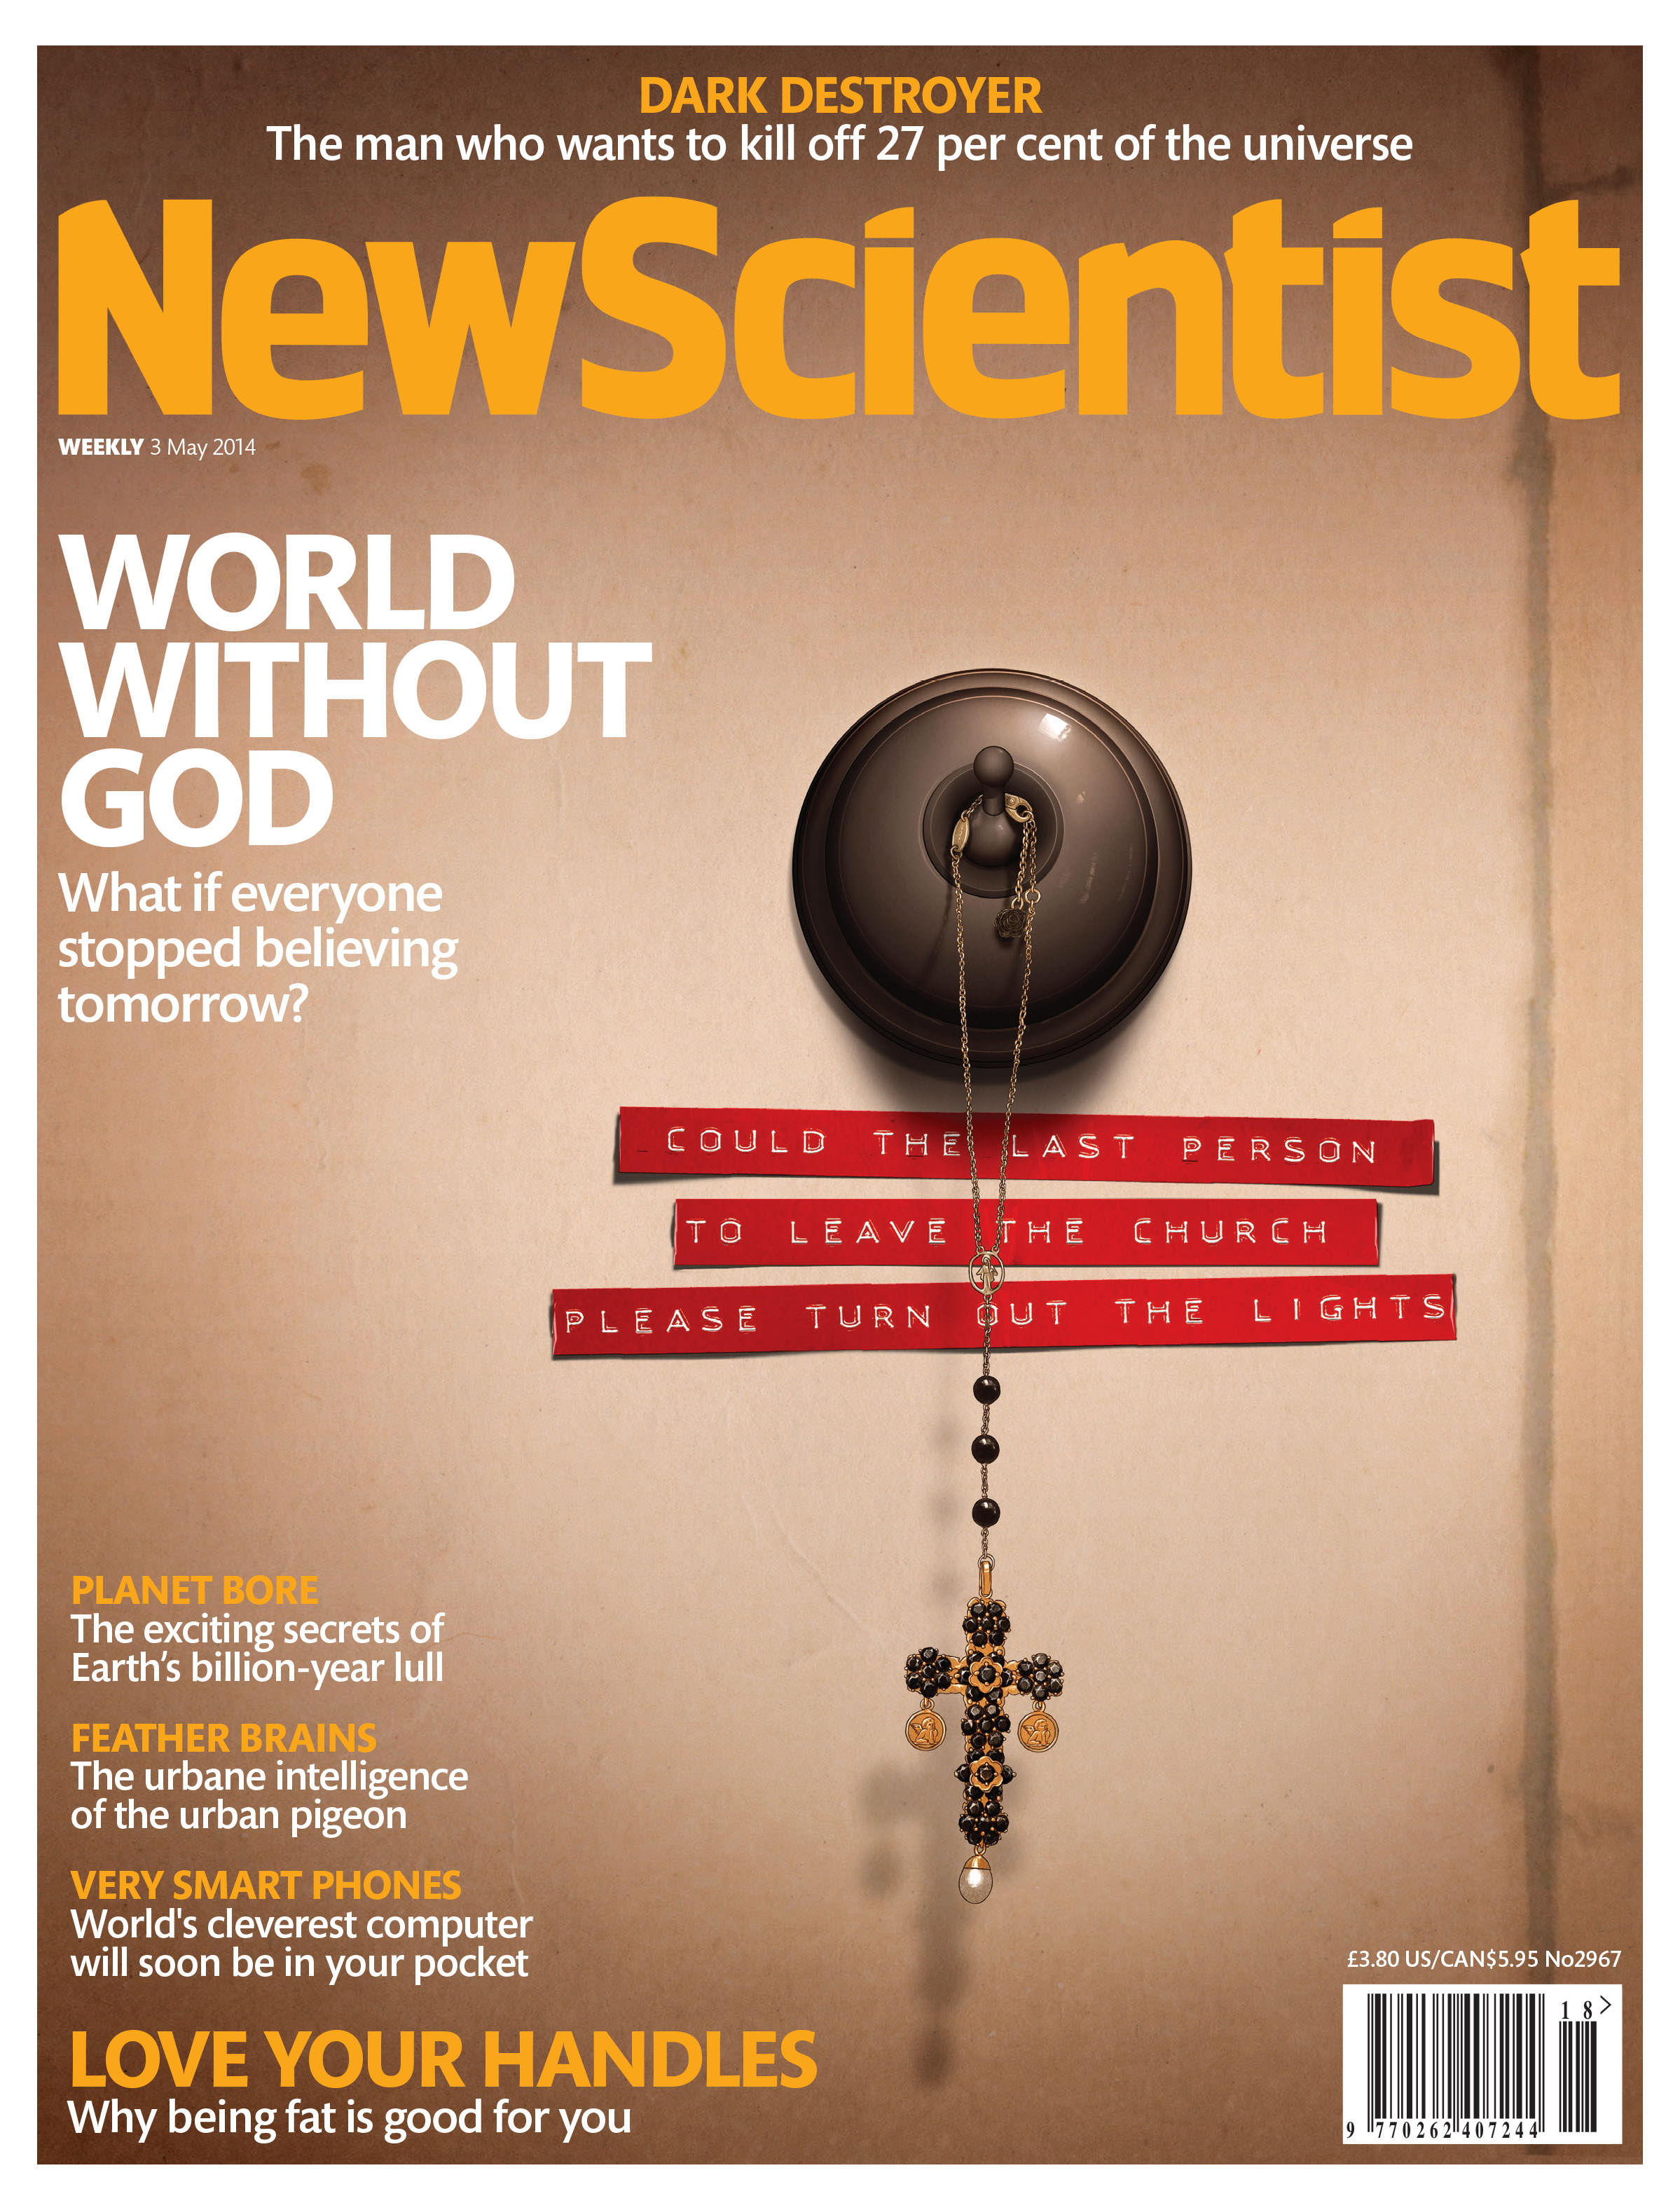 new scientist magazine dating New scientist magazine - 12 month subscription - new scientist magazine inspires both innovation and imagination, with content on the latest discoveries in science and technology and the impact on today's society.